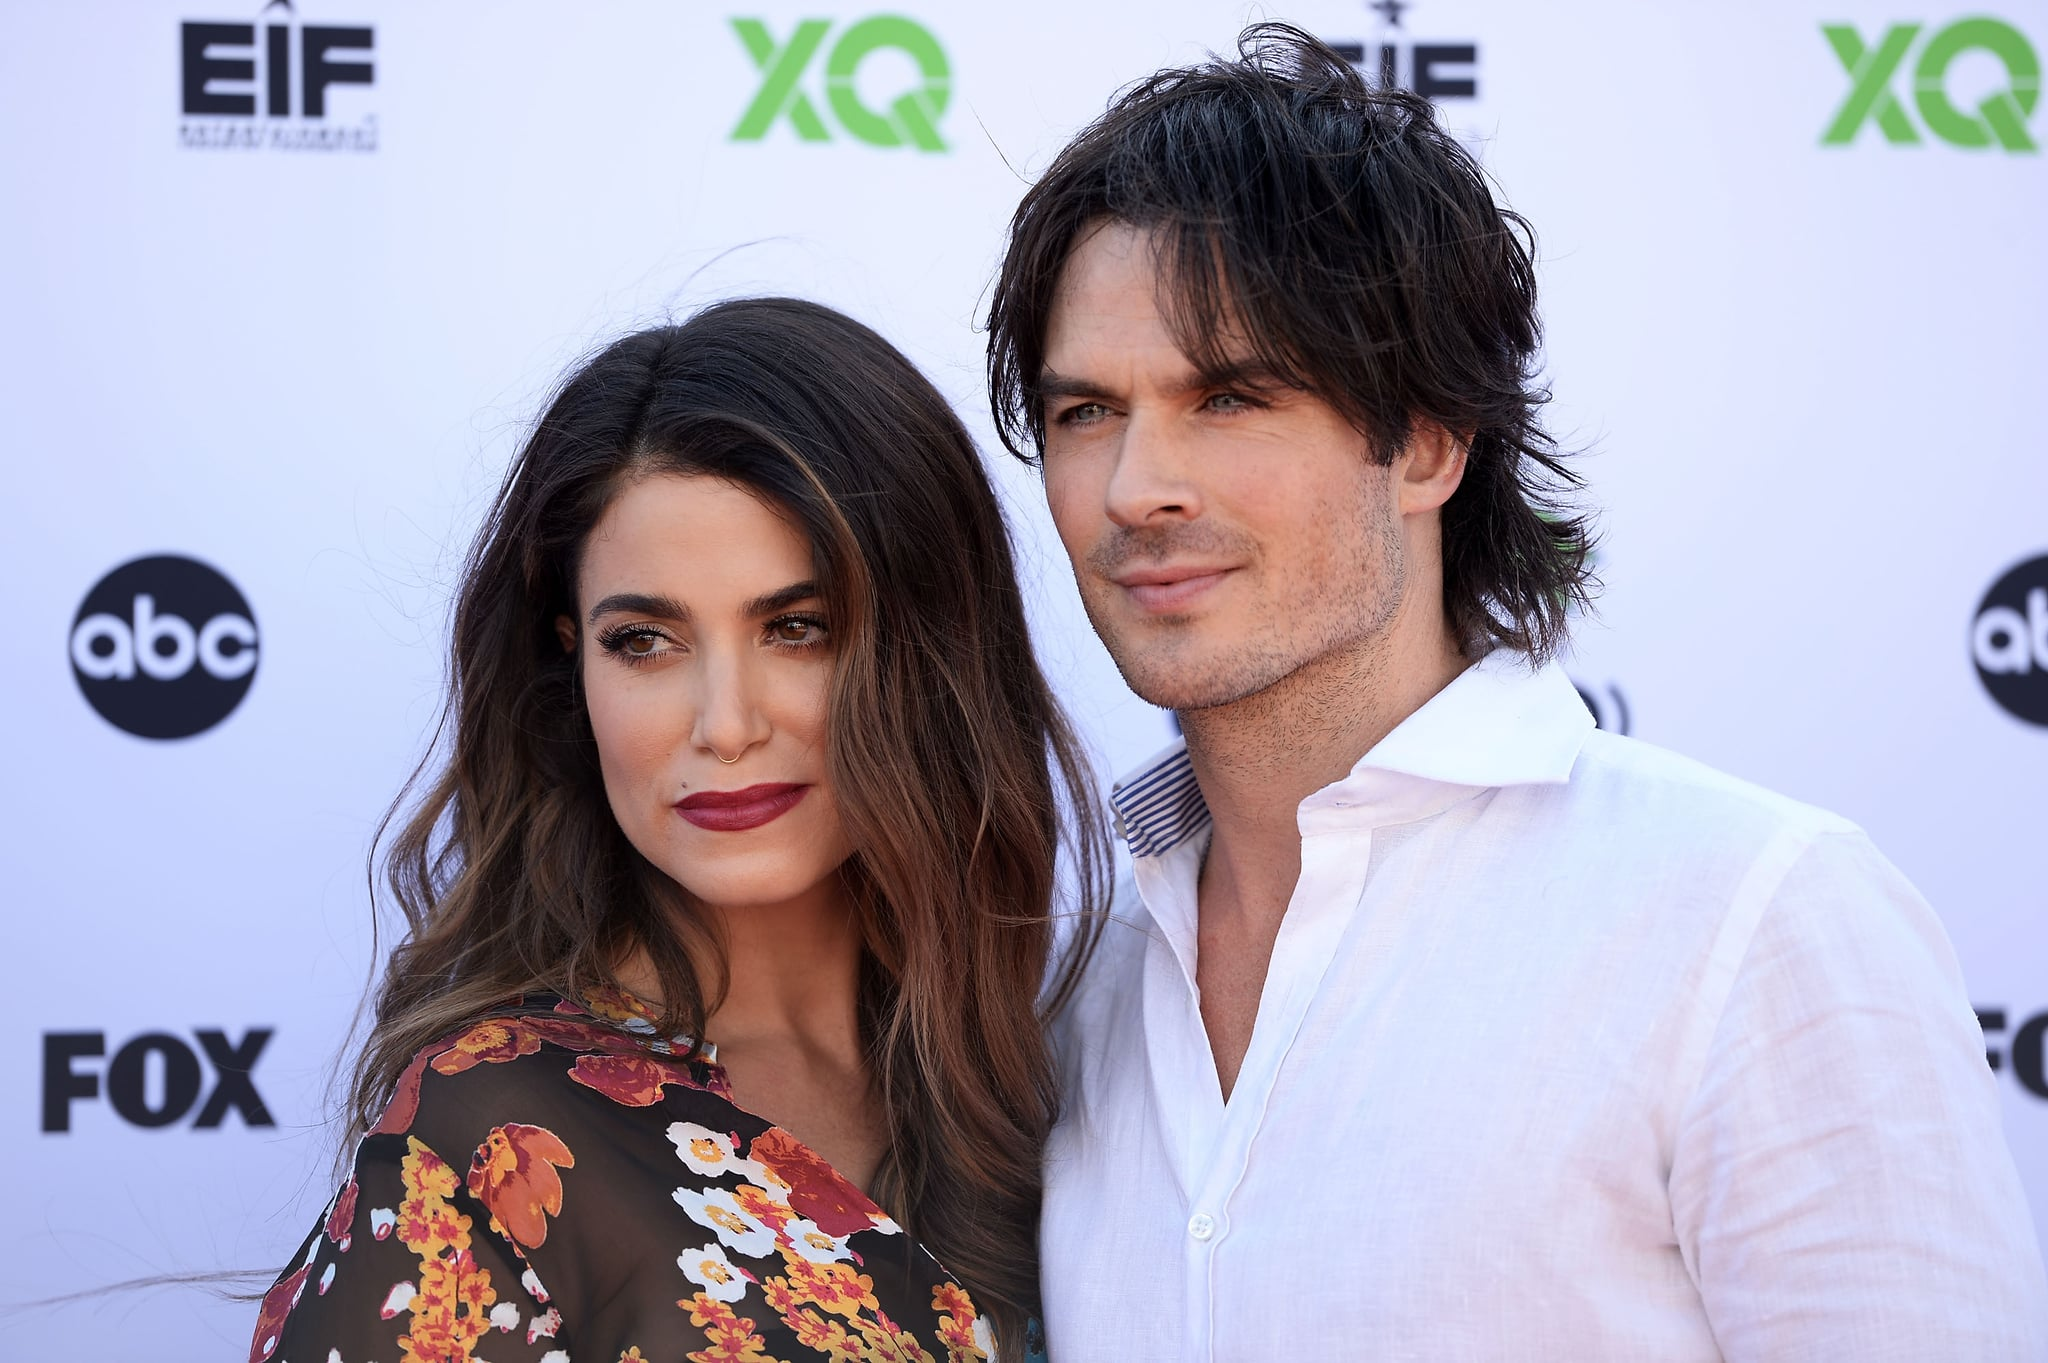 Nikki Reed and Ian Somerhalder apologise over birth control comments